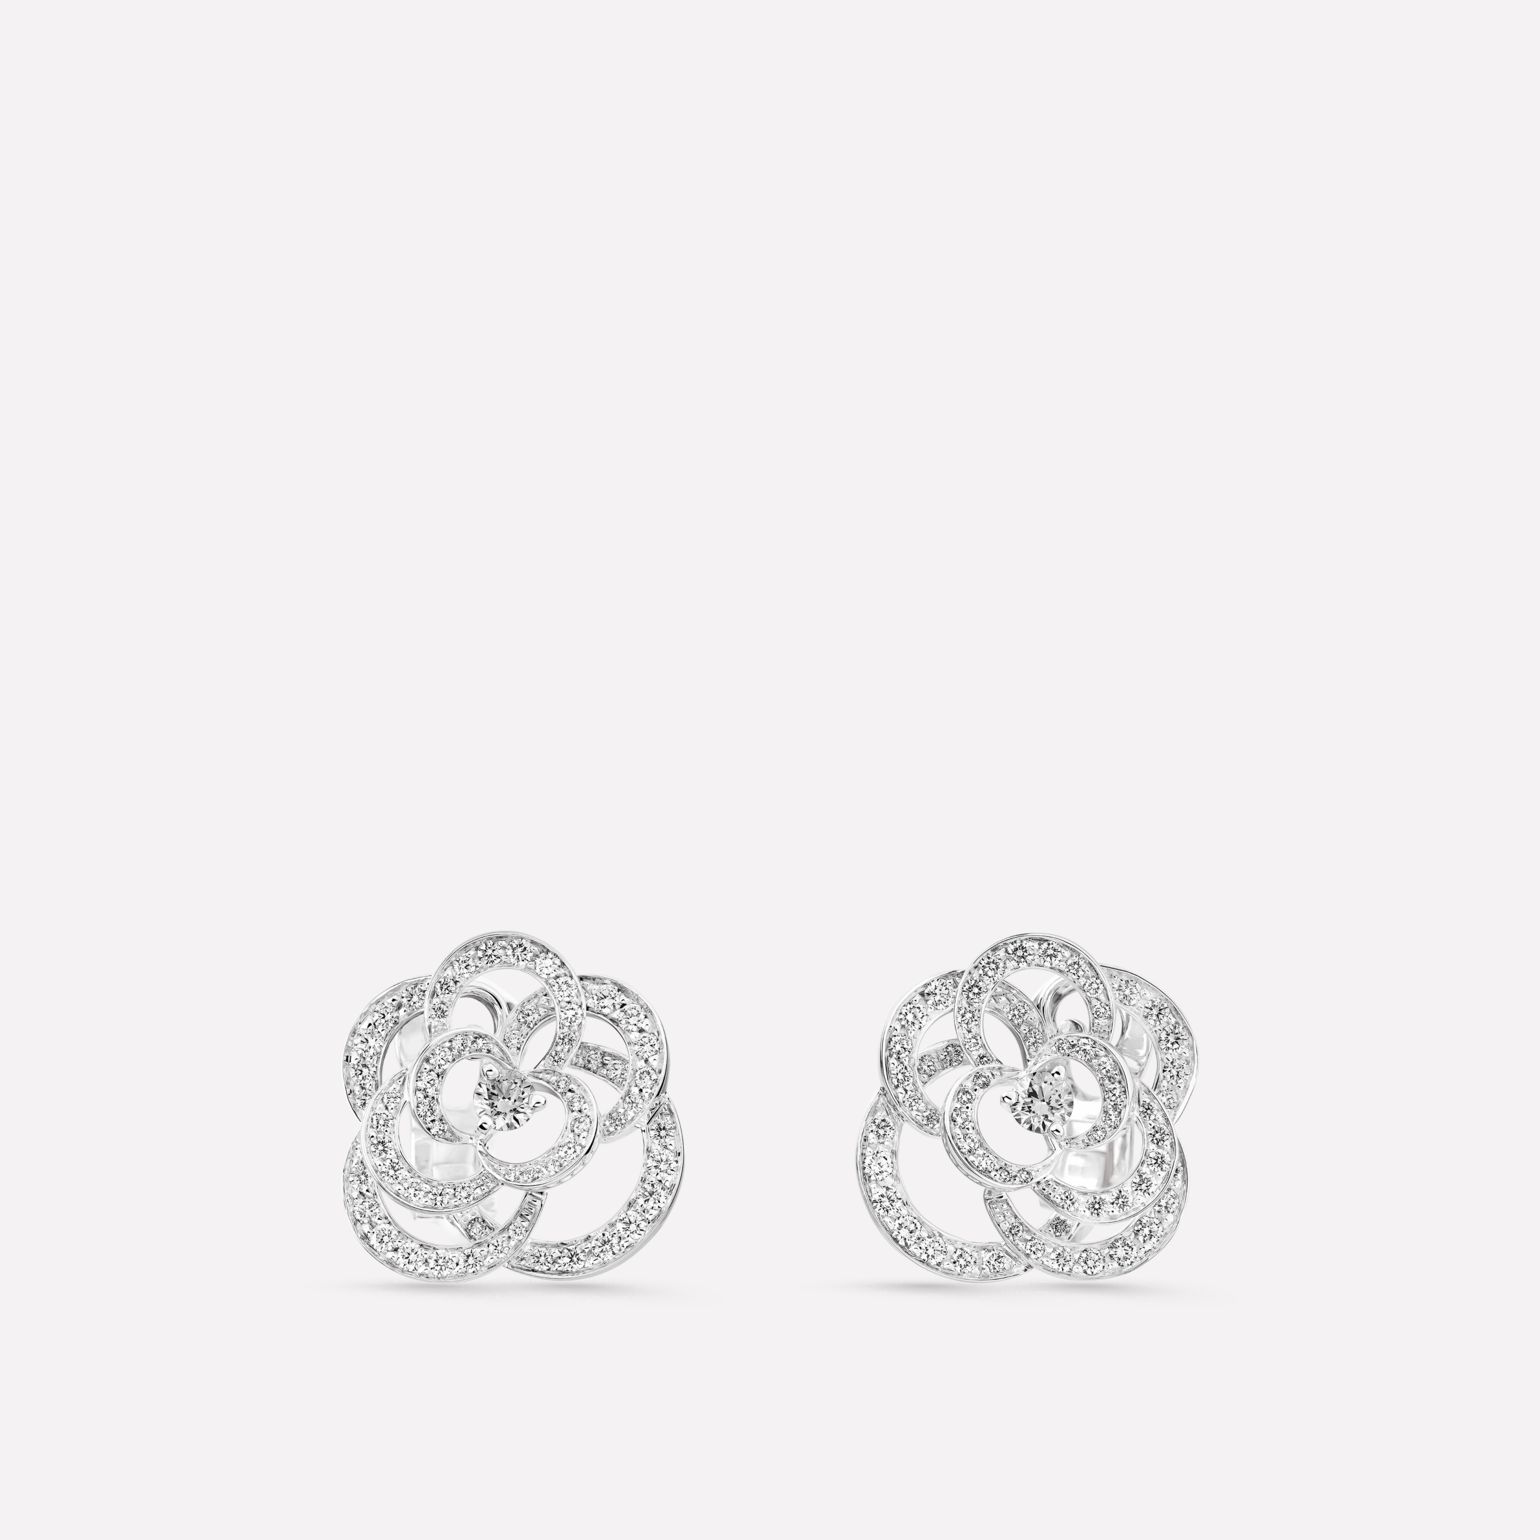 Camélia Earrings Fil de Camélia earrings in 18K white gold, diamonds and central diamond